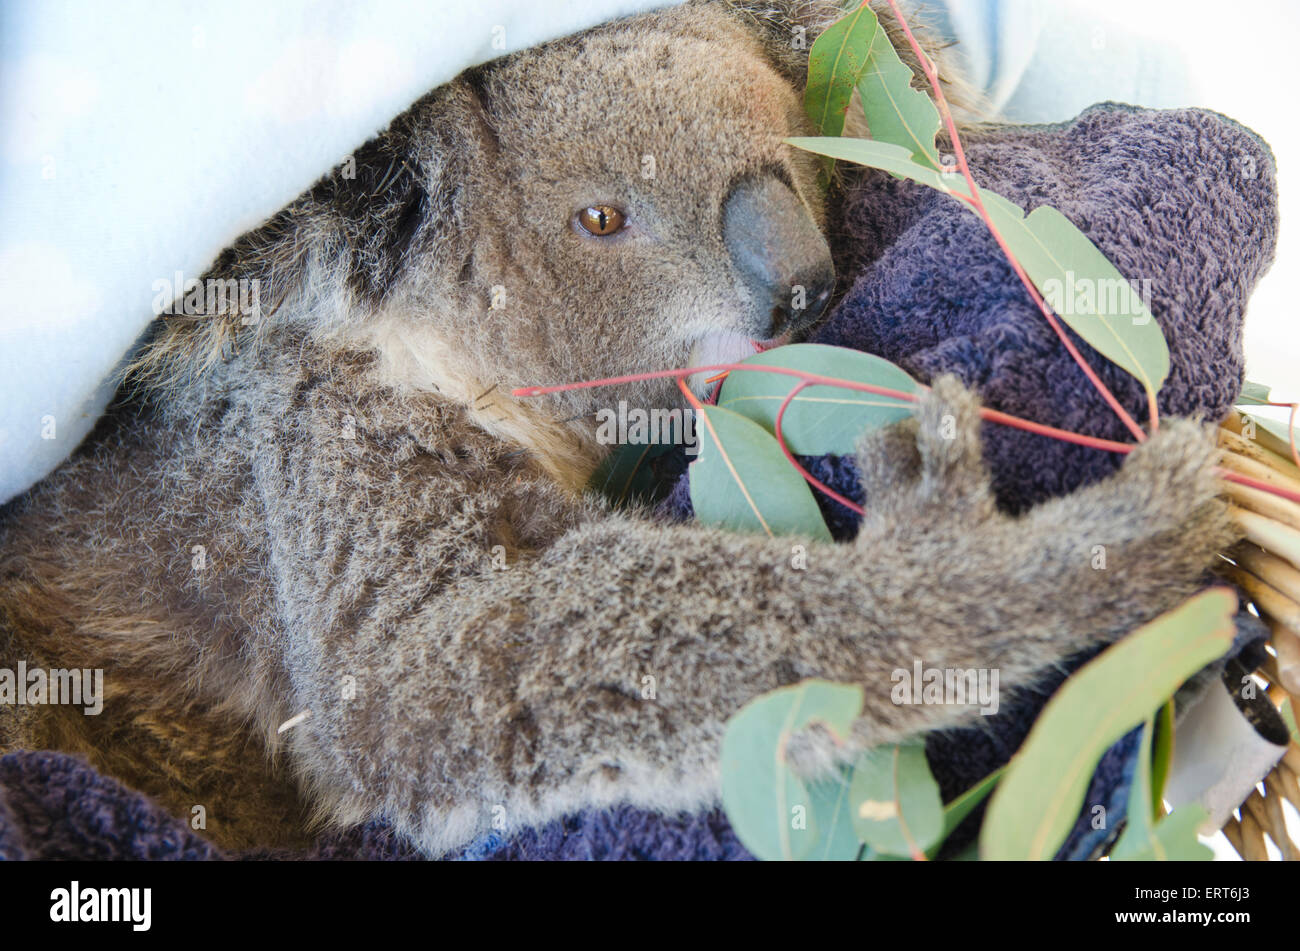 A young rescued female koala eating gum leaves, Phasocolarctus cinerus - Stock Image